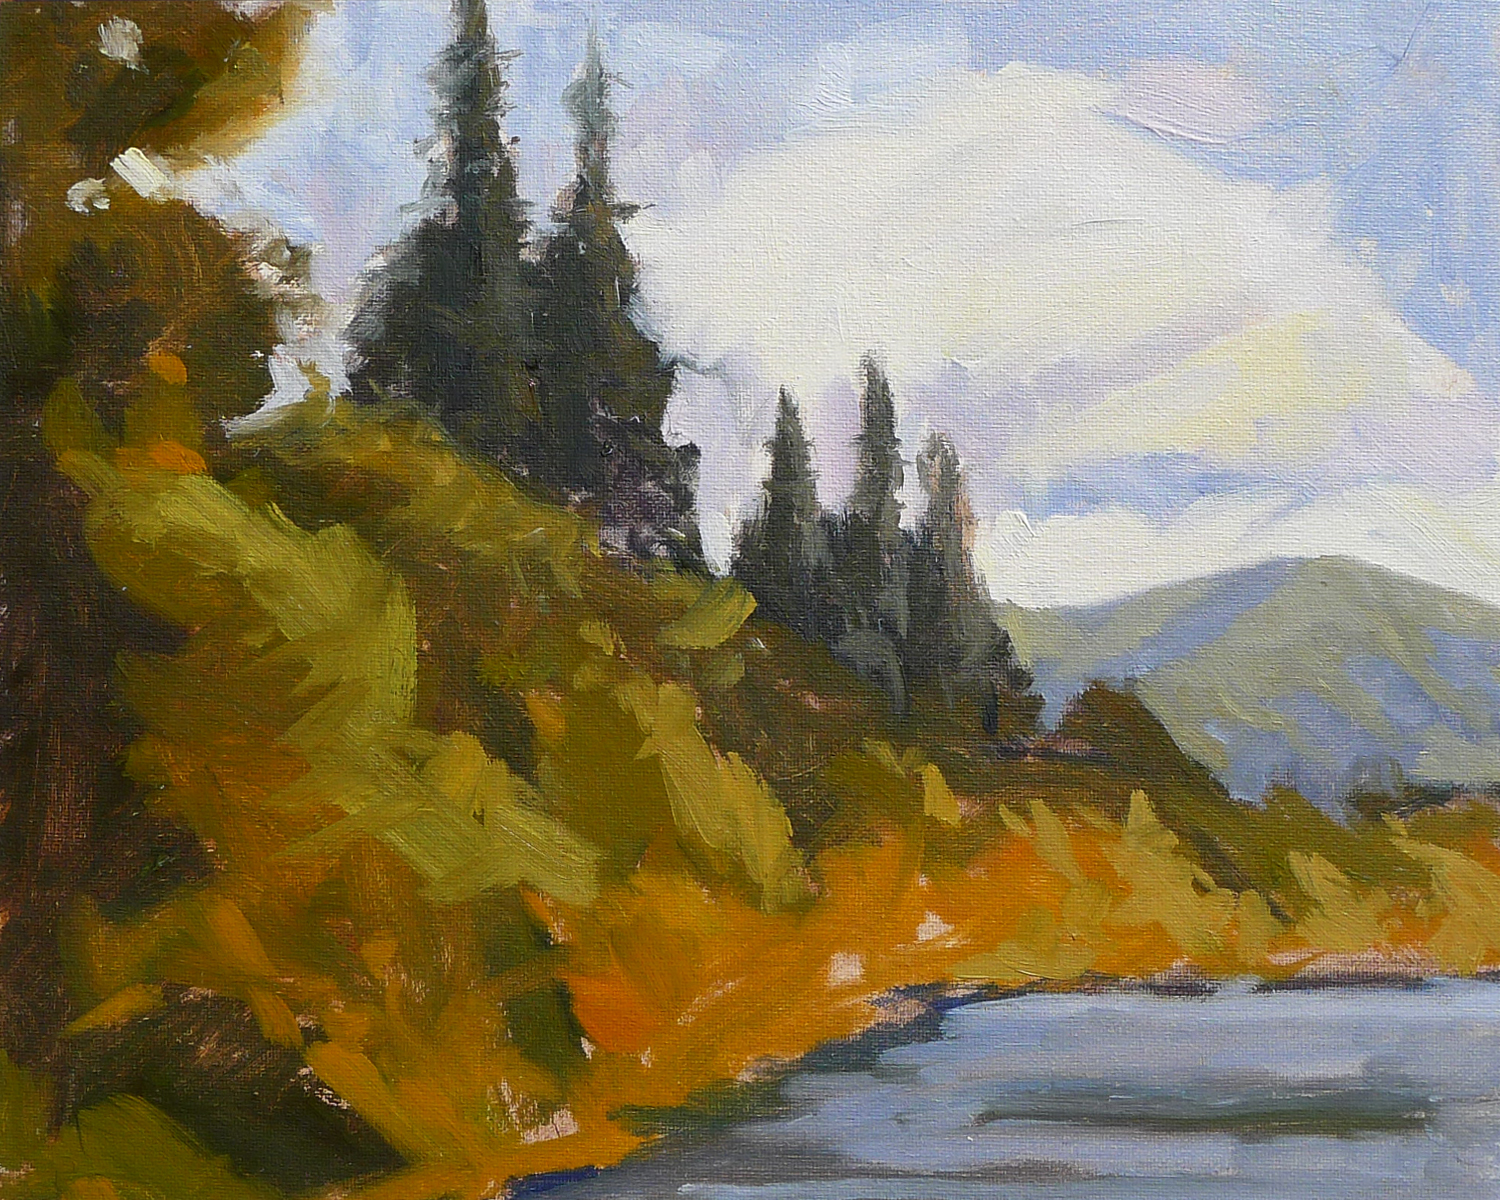 Lake View - Impressionist Painting by Adam Houston